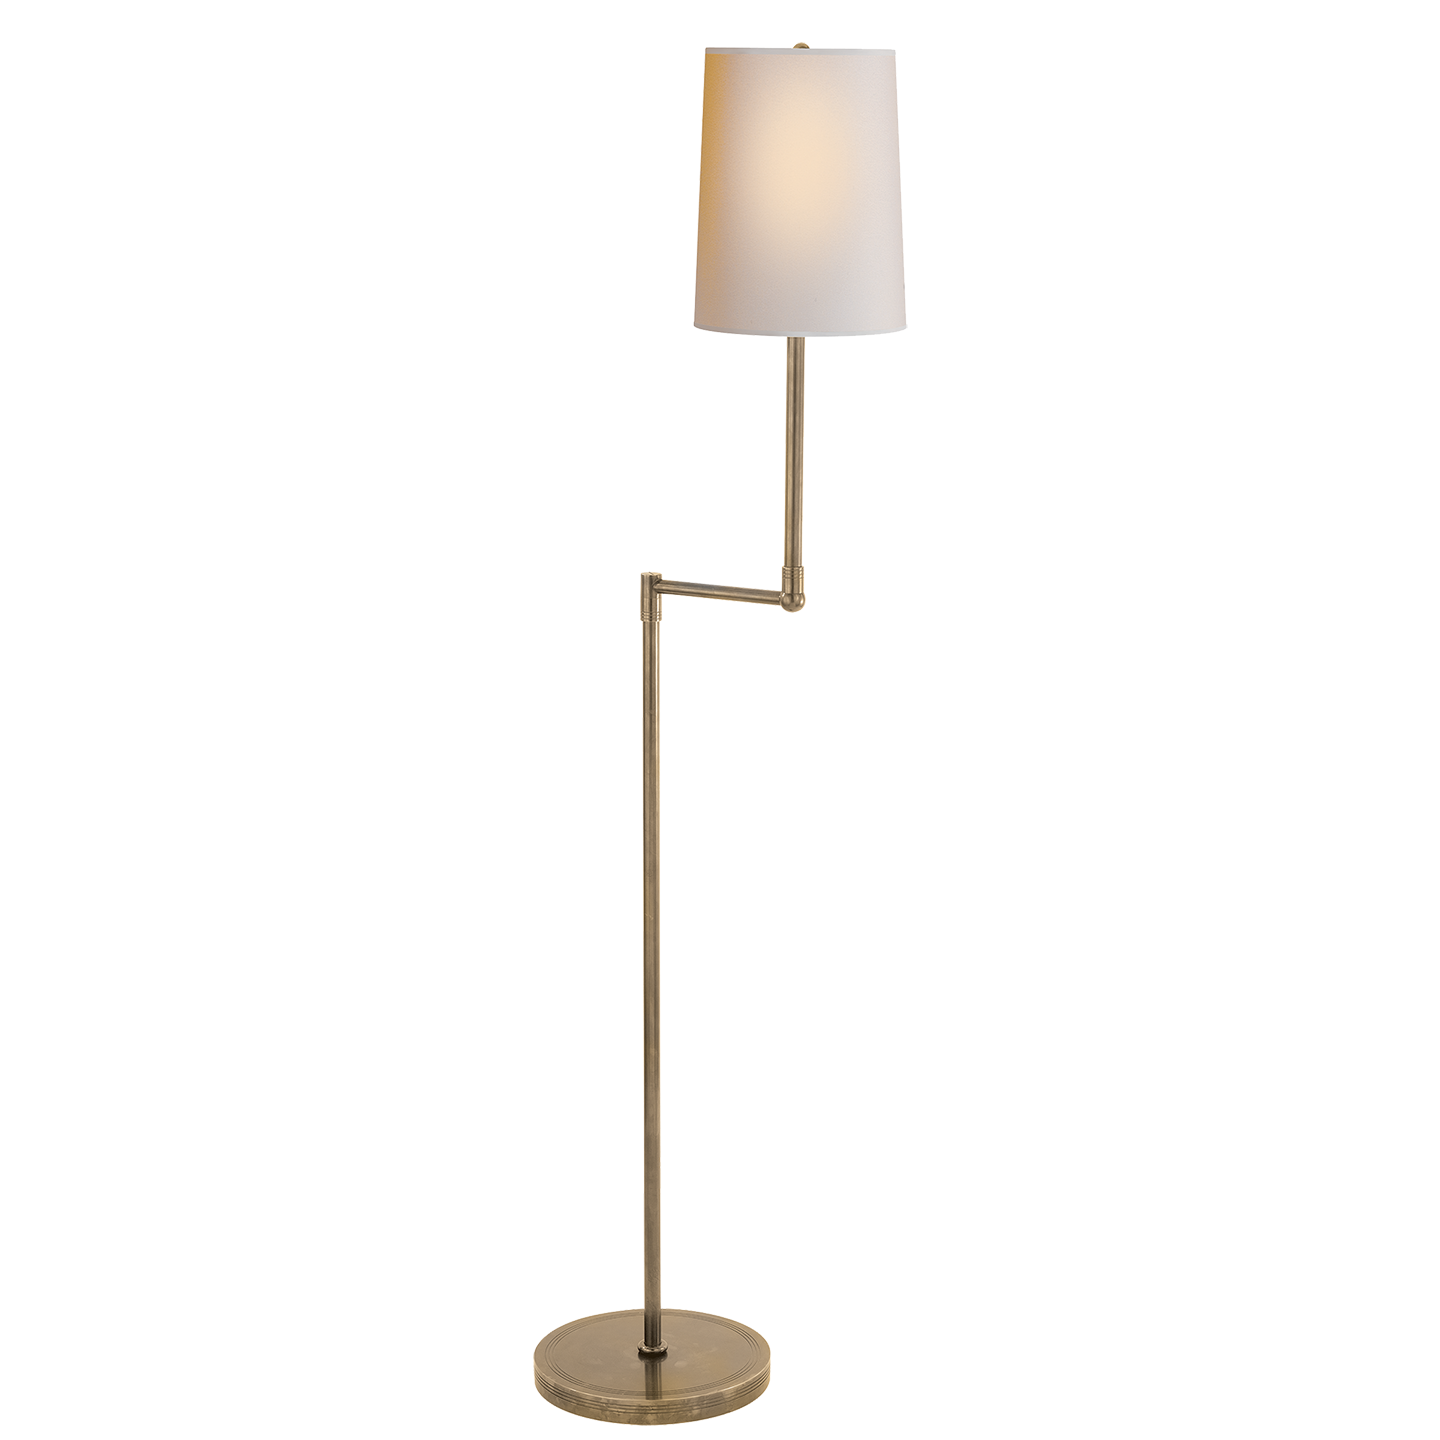 Stehleuchten messing choice image mbel furniture ideen stehleuchten papier choice image mbel furniture ideen hand rubbed antique brass with natural paper shade lighting parisarafo Gallery